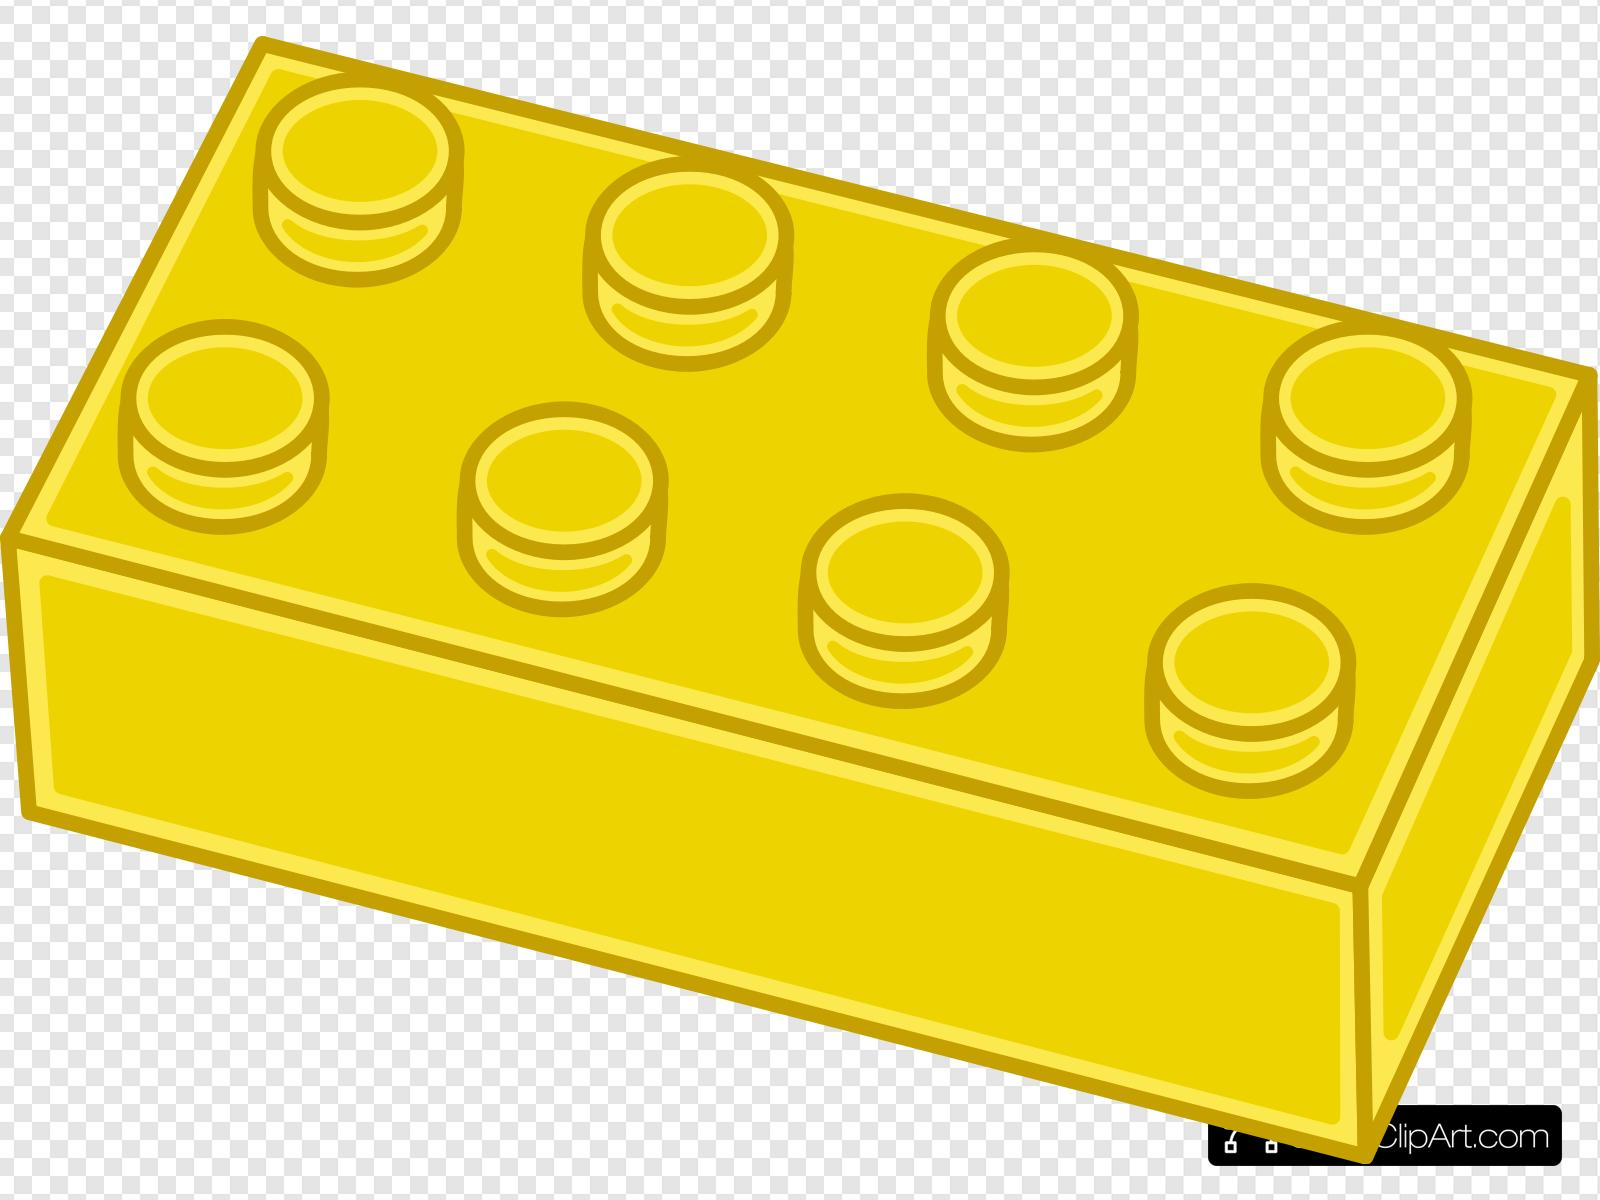 Yellow Lego Brick Clip art, Icon and SVG.